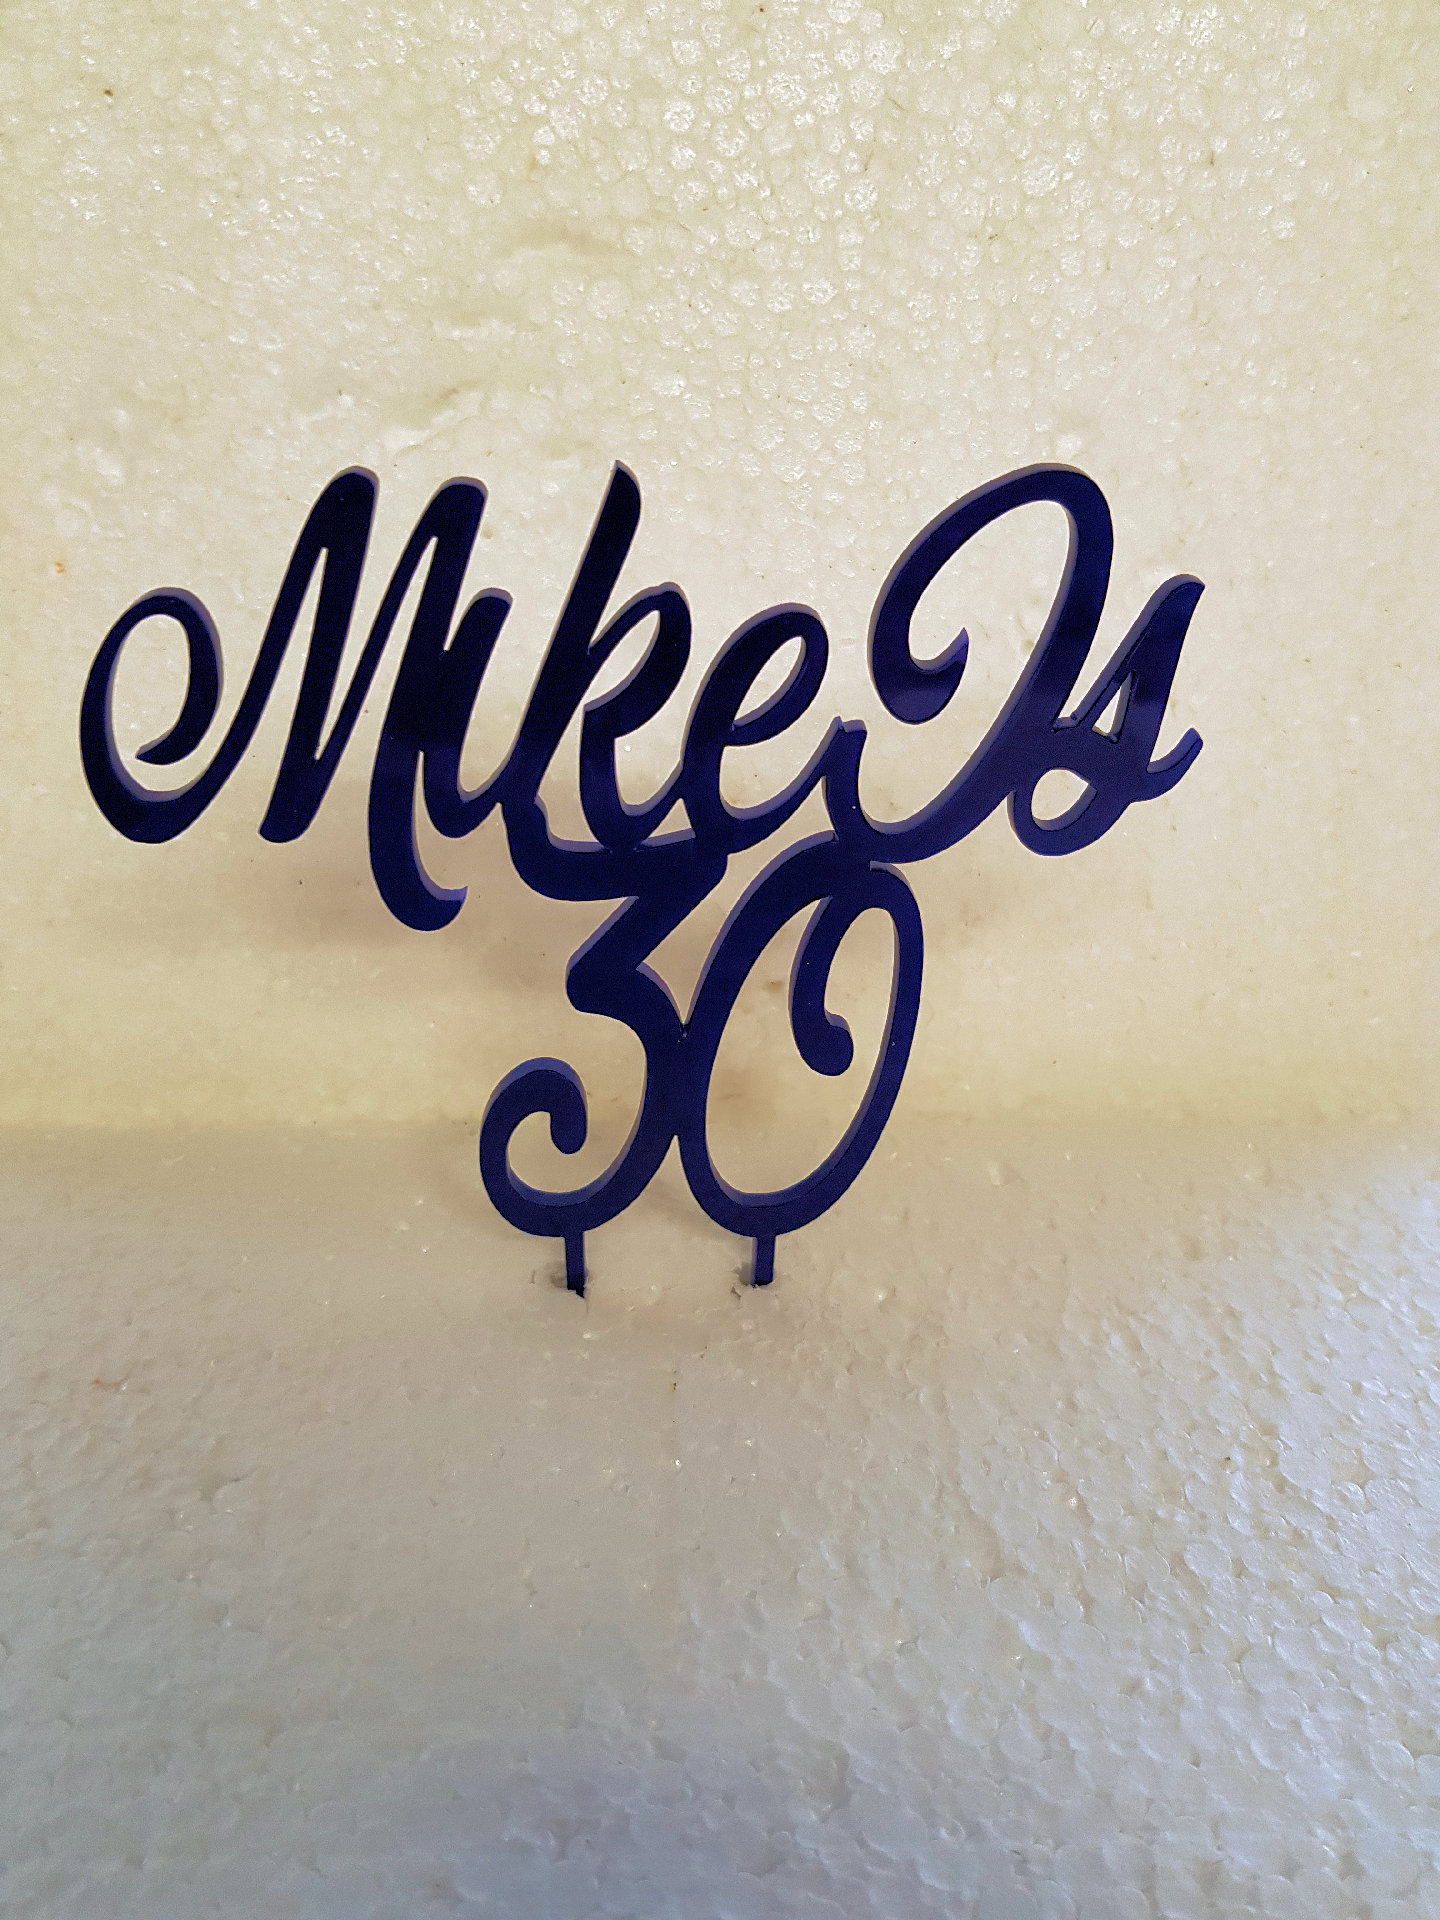 Name is then age acrylic cake topper Requited Script